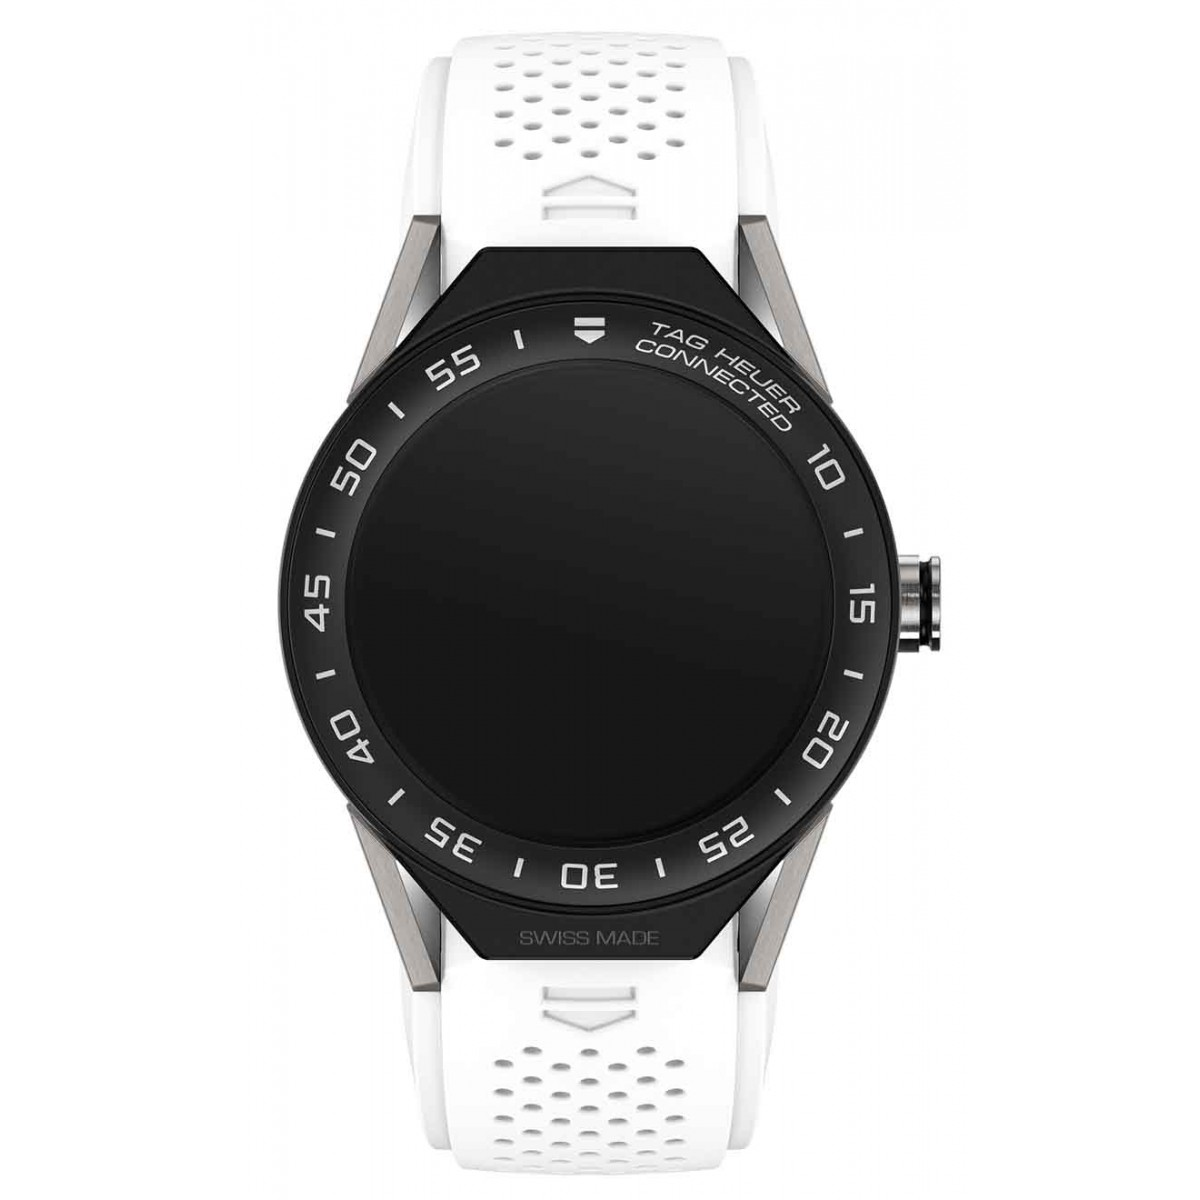 TAG HEUER CONNECTED MODULAR 45 50 M - ∅45 mm Caucho blanco con bisel de cerámica negra mate